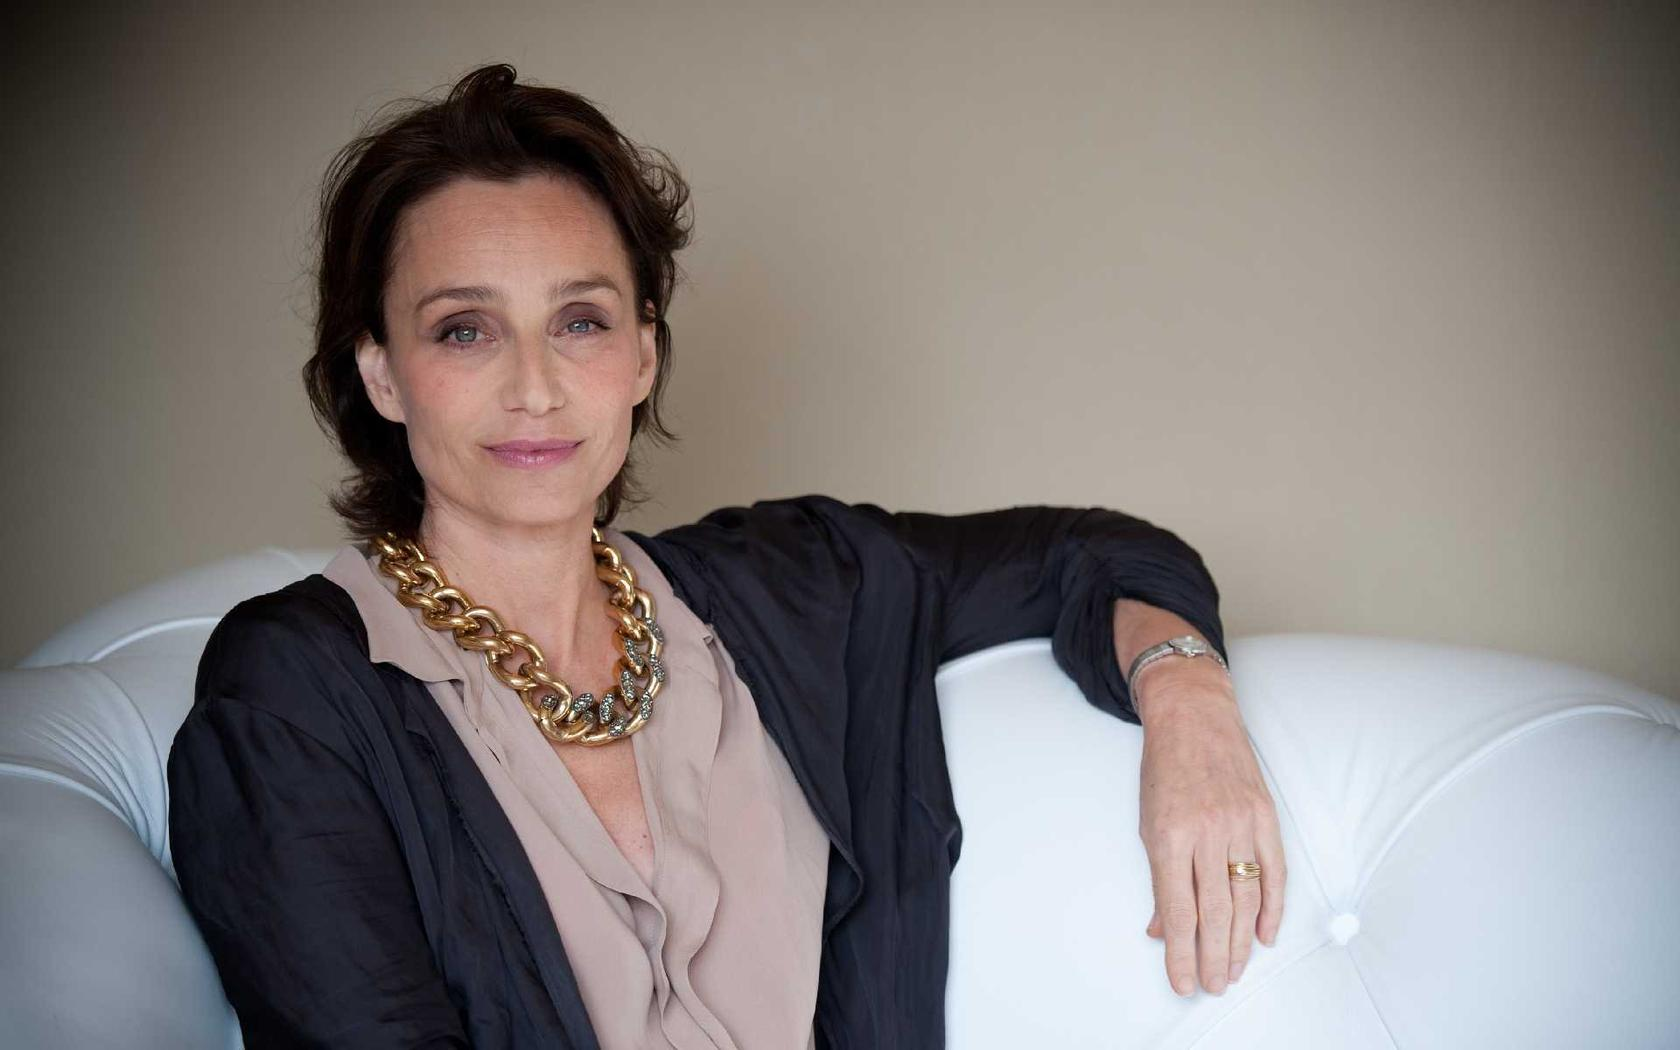 kristin scott thomas wallpaper 1680x1050